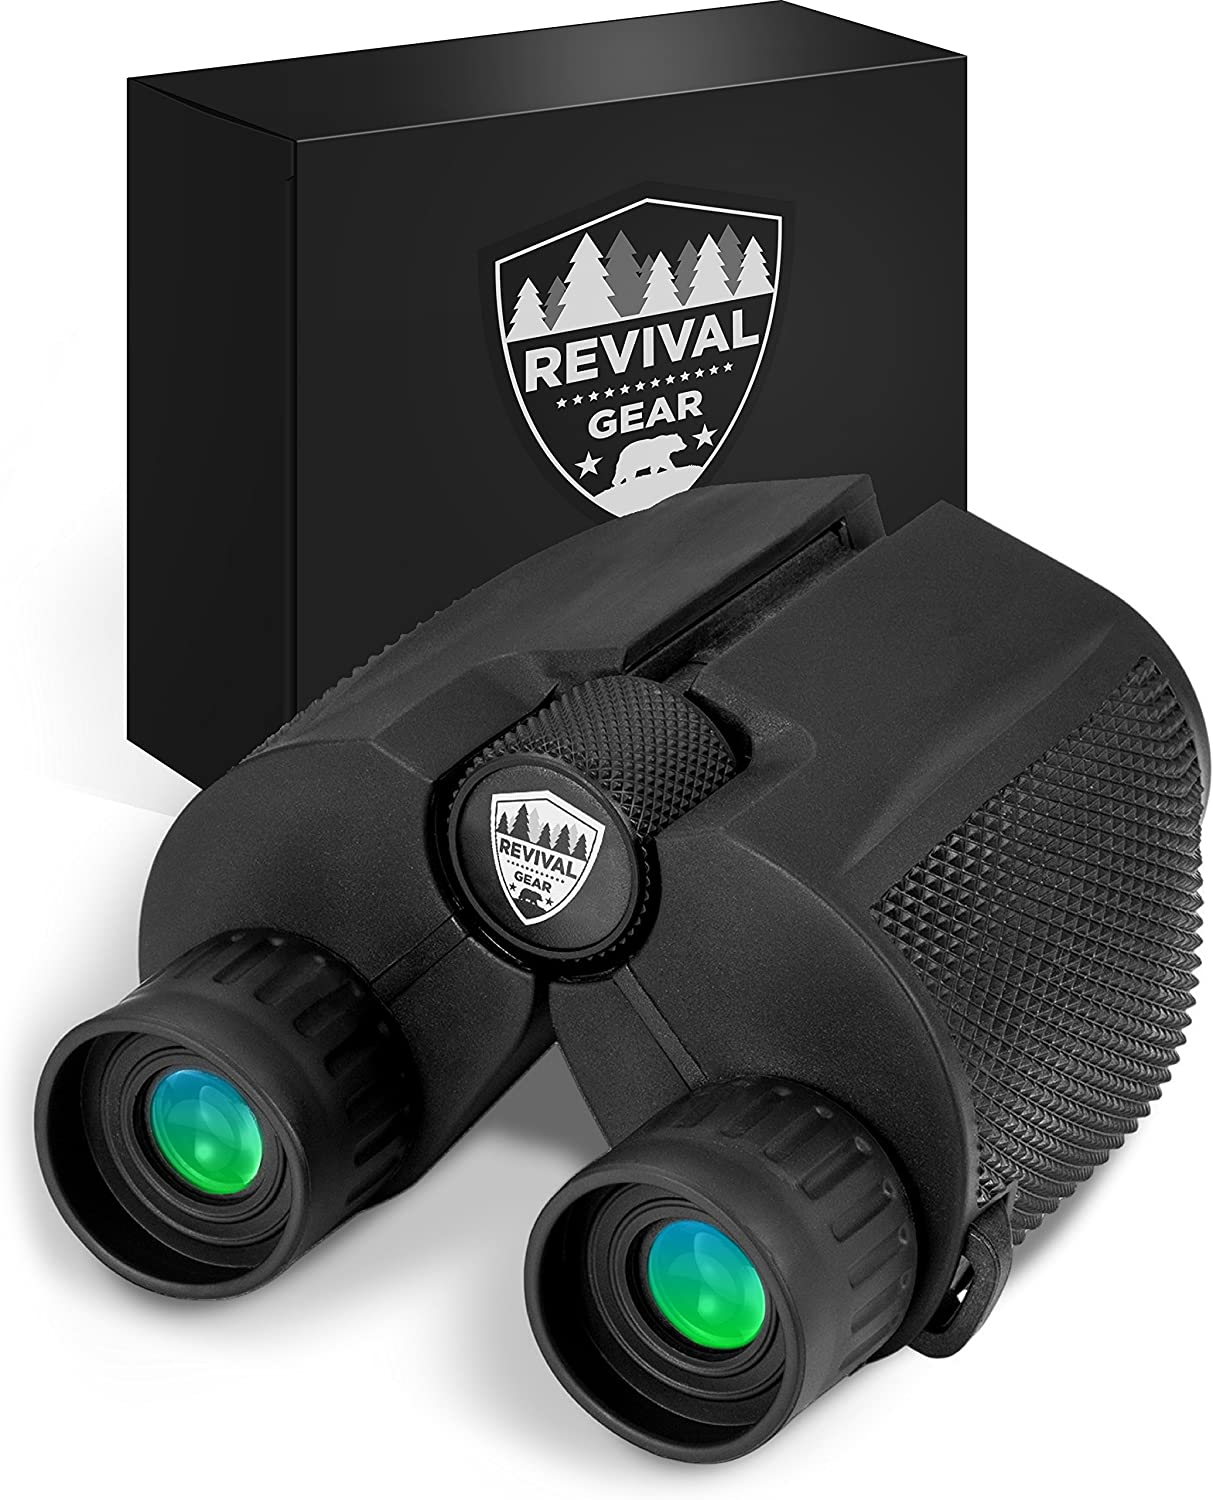 Powerful Compact Binoculars Tactical Durable Set That Everyone Finds Easy to Use. Includes Neck Strap Travel Case. Used When Hiking, Bird Watching, Pro Sports Games, Concerts, Hunting